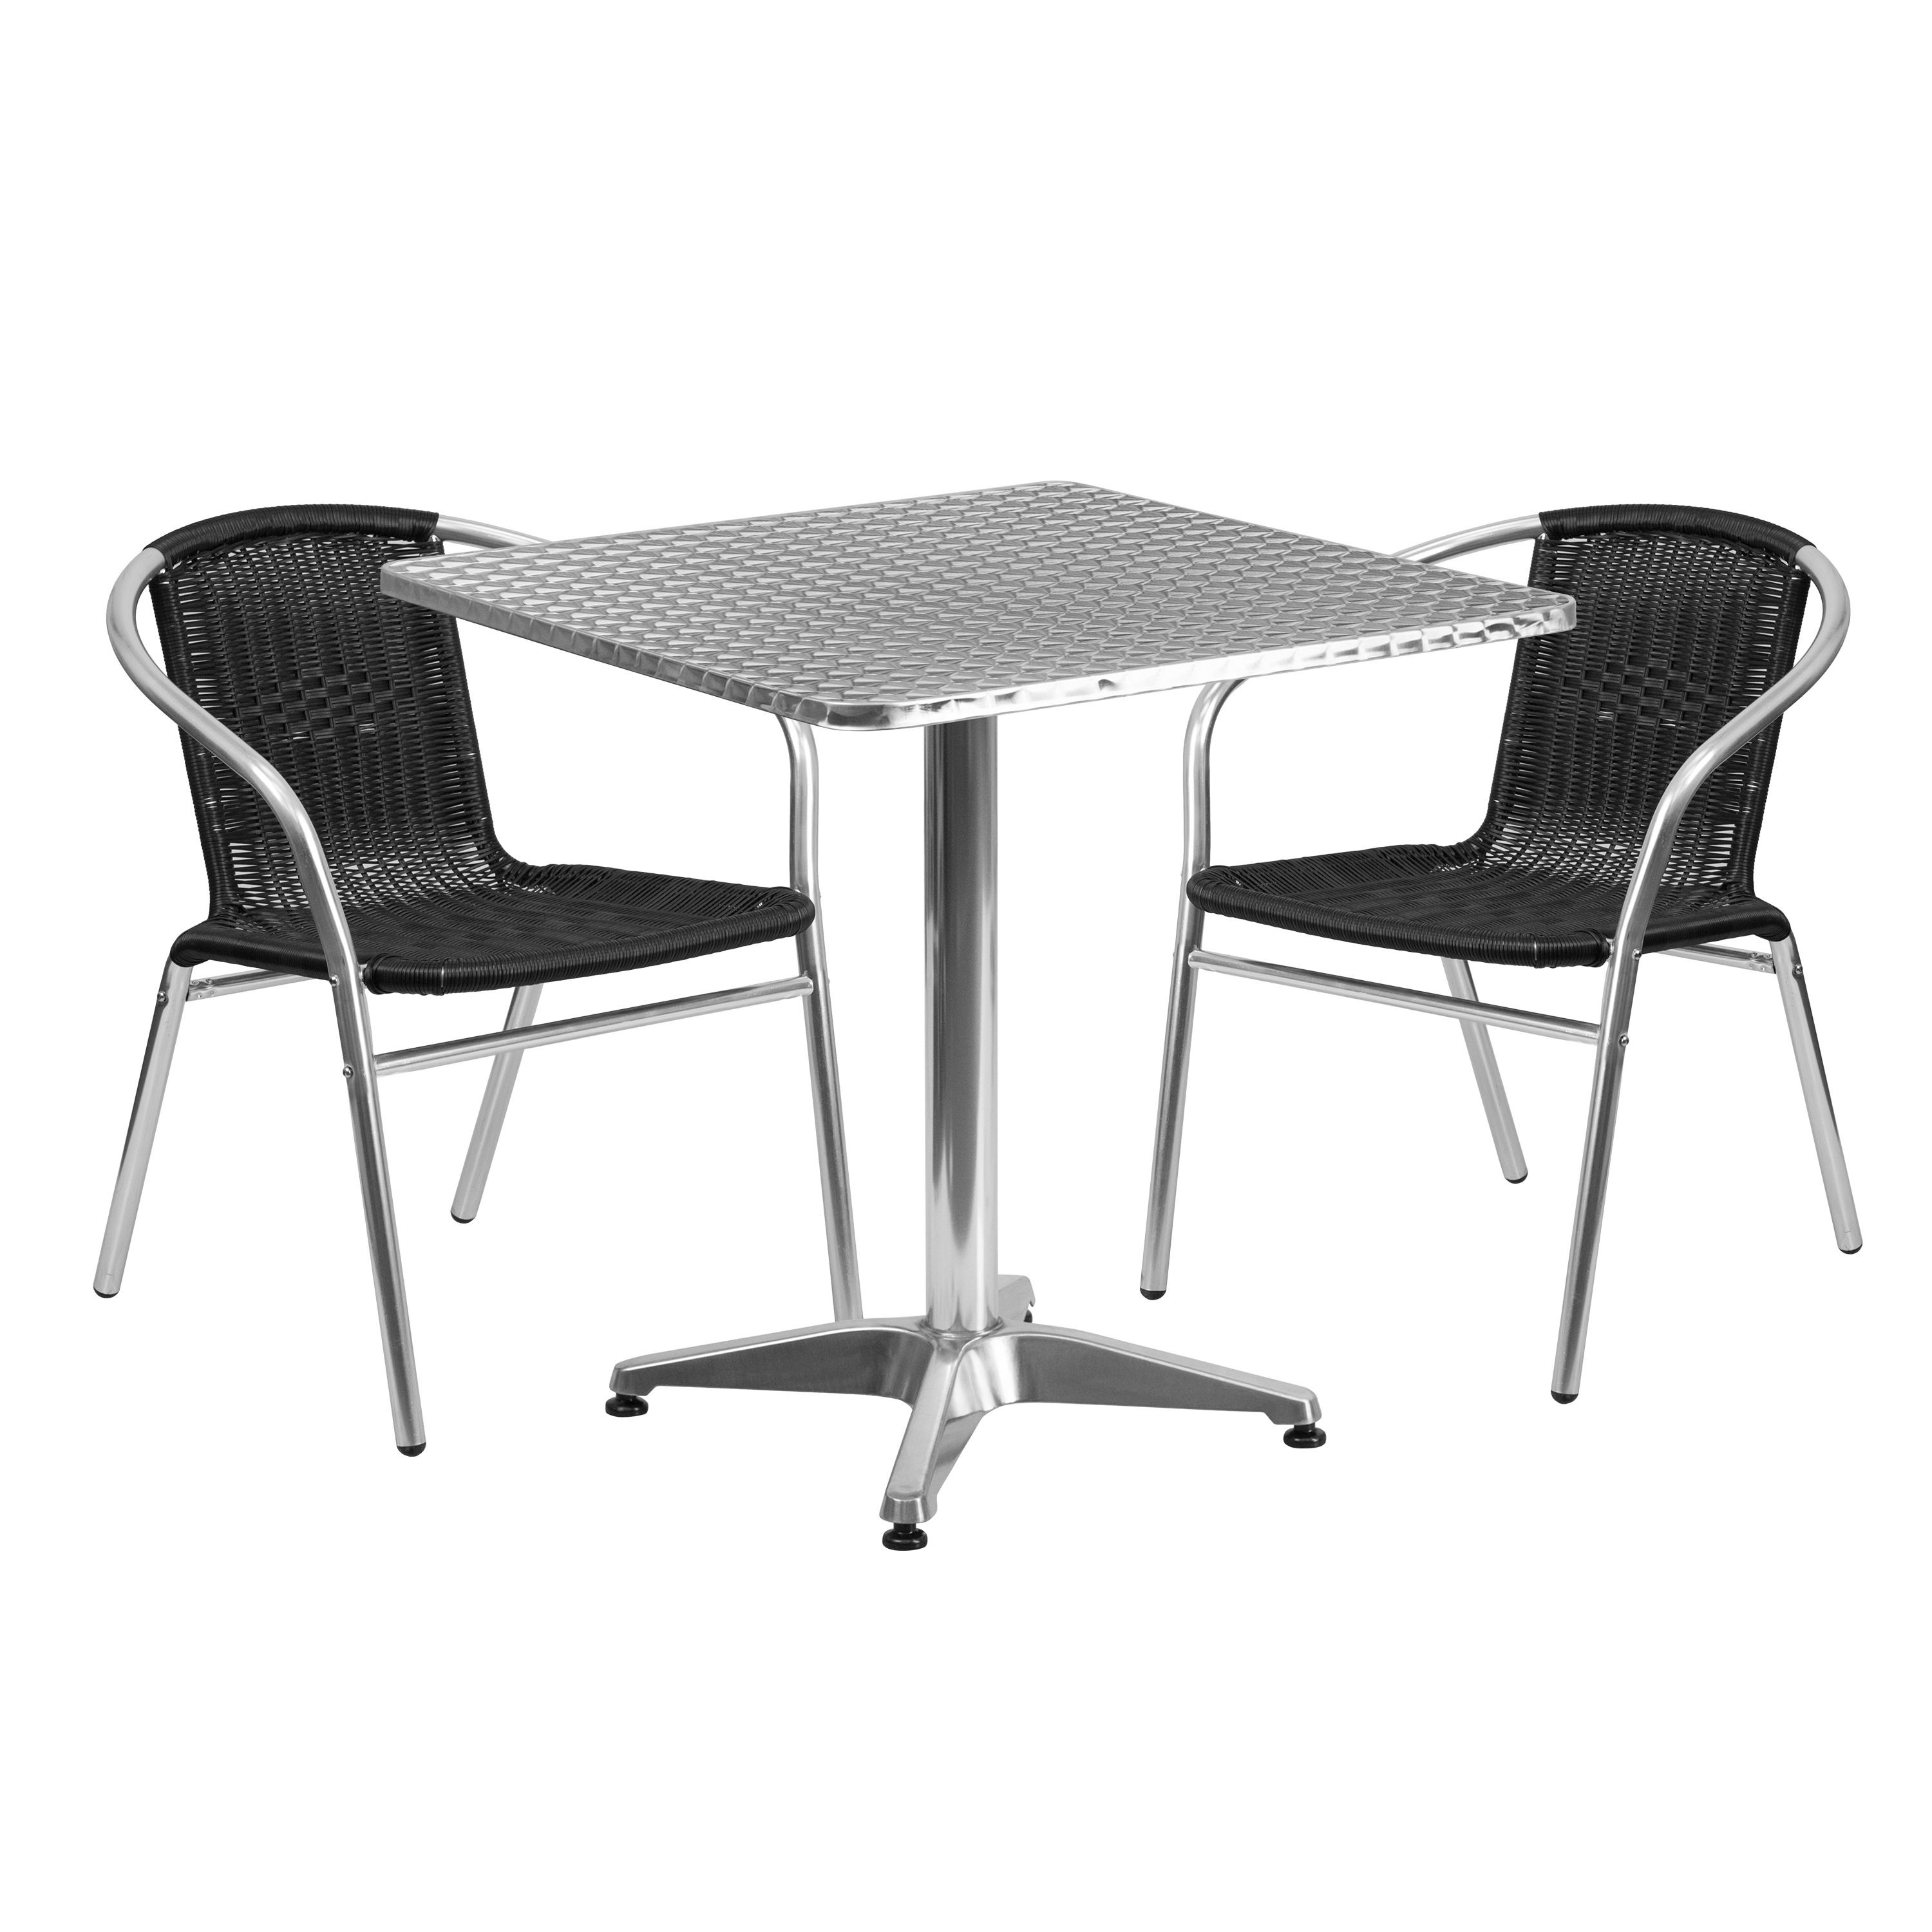 "Flash Furniture 27.5"" Square Aluminum Indoor-Outdoor Table with 2 Rattan Chairs, Multiple Colors"